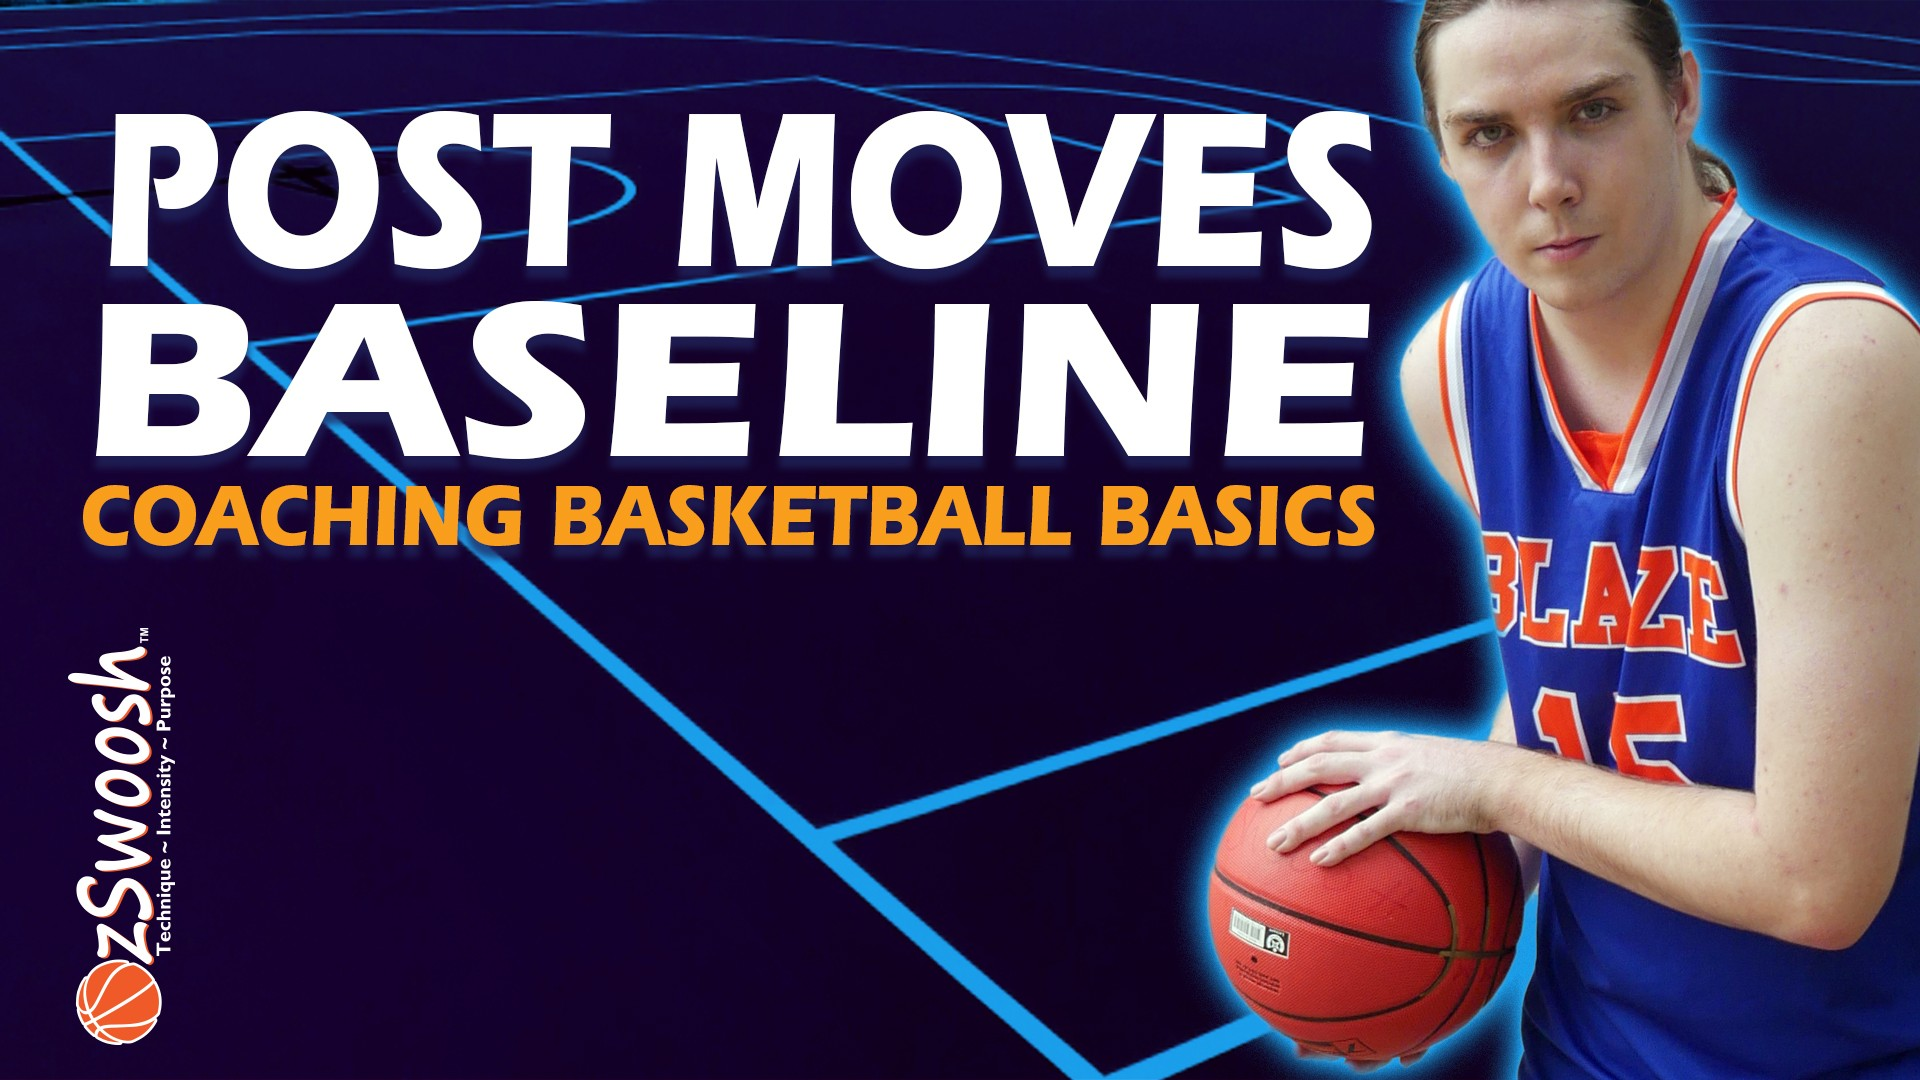 post up back to the basket in basketball - baseline moves